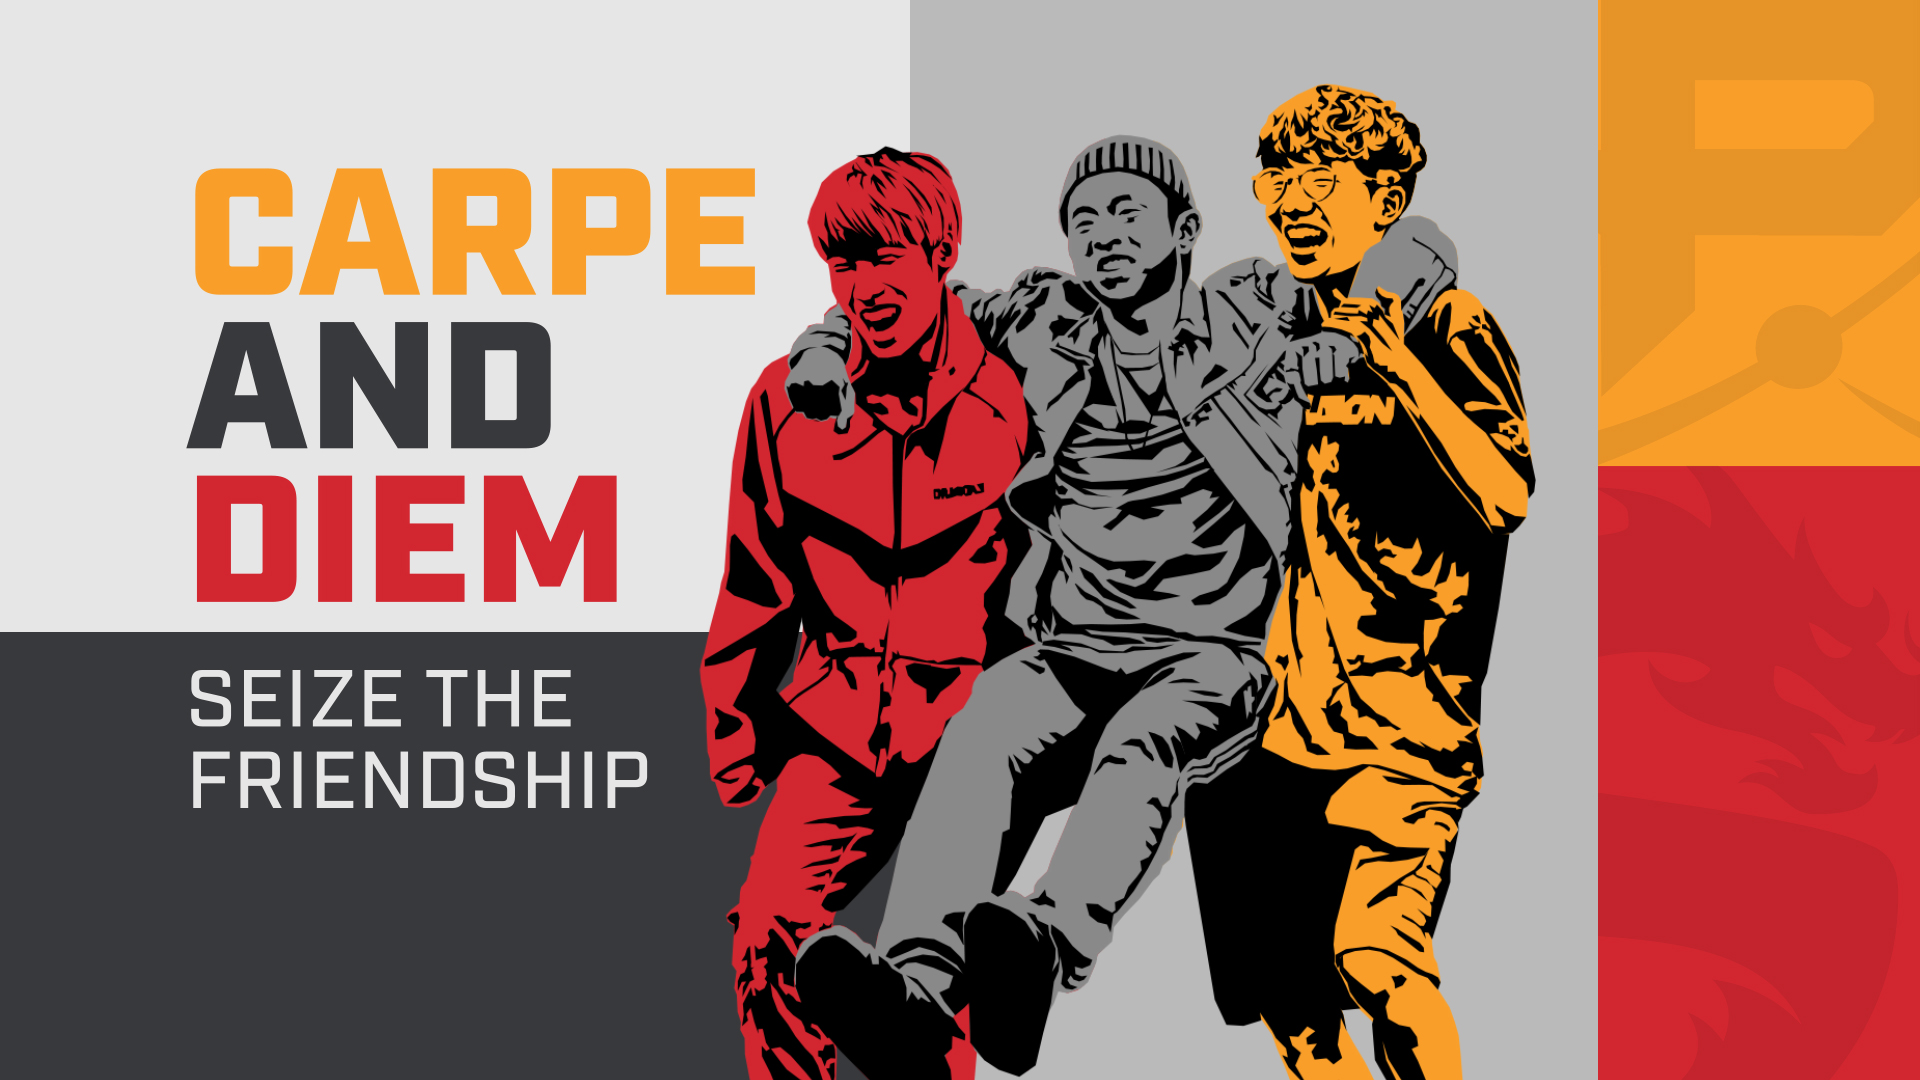 Carpe and Diem: Seize the Friendship